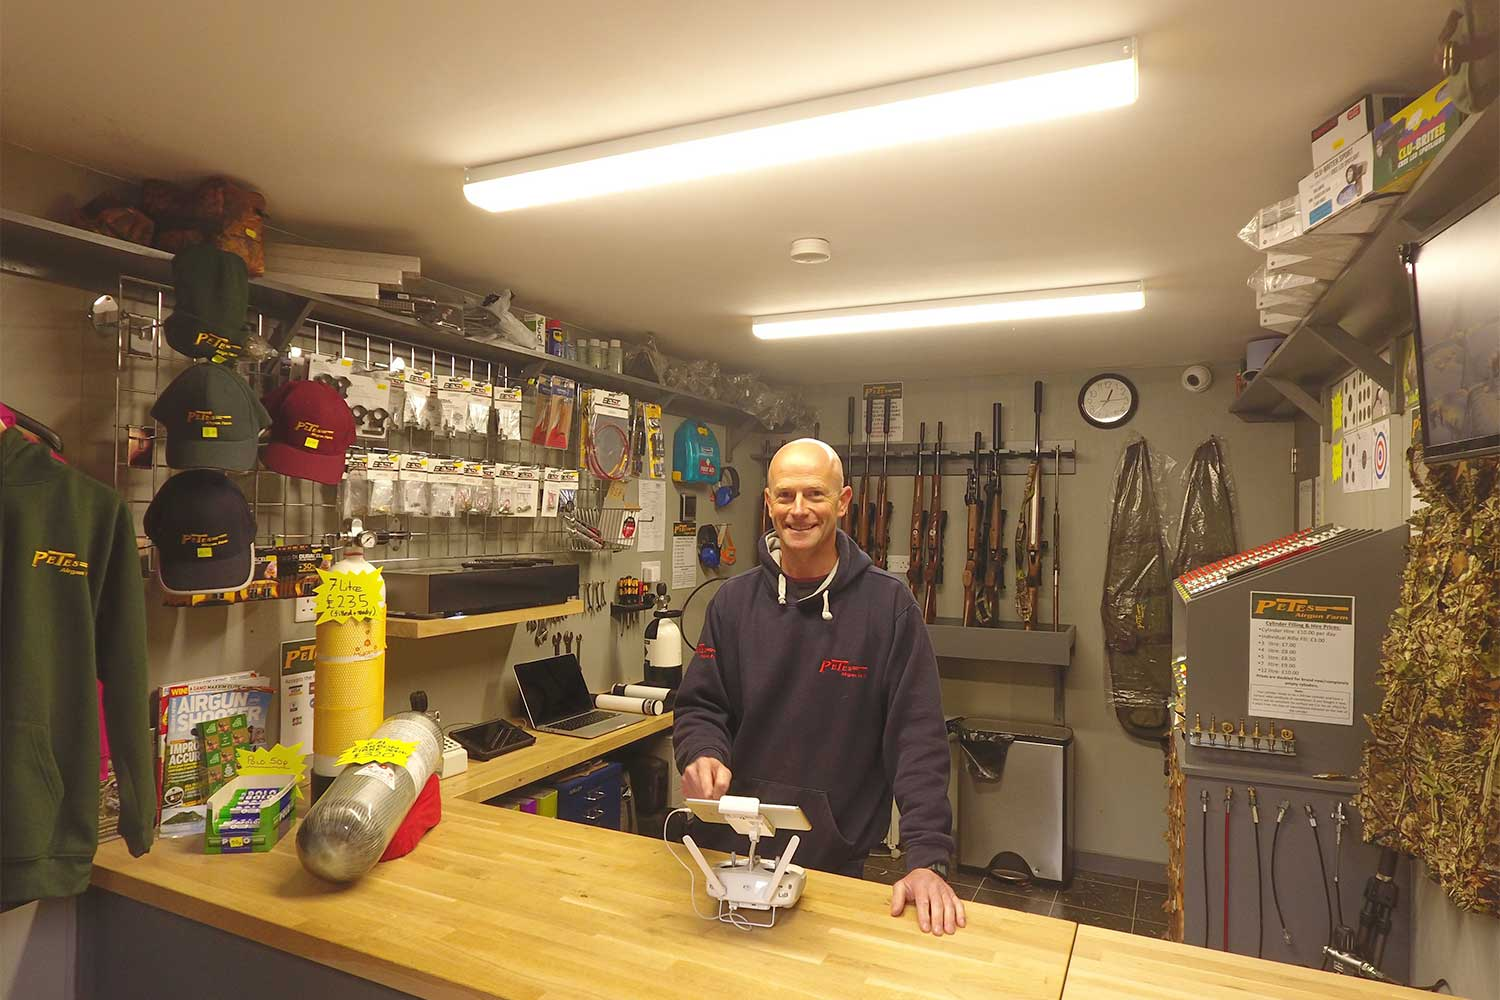 Pete in the shop. Looking cheerful!